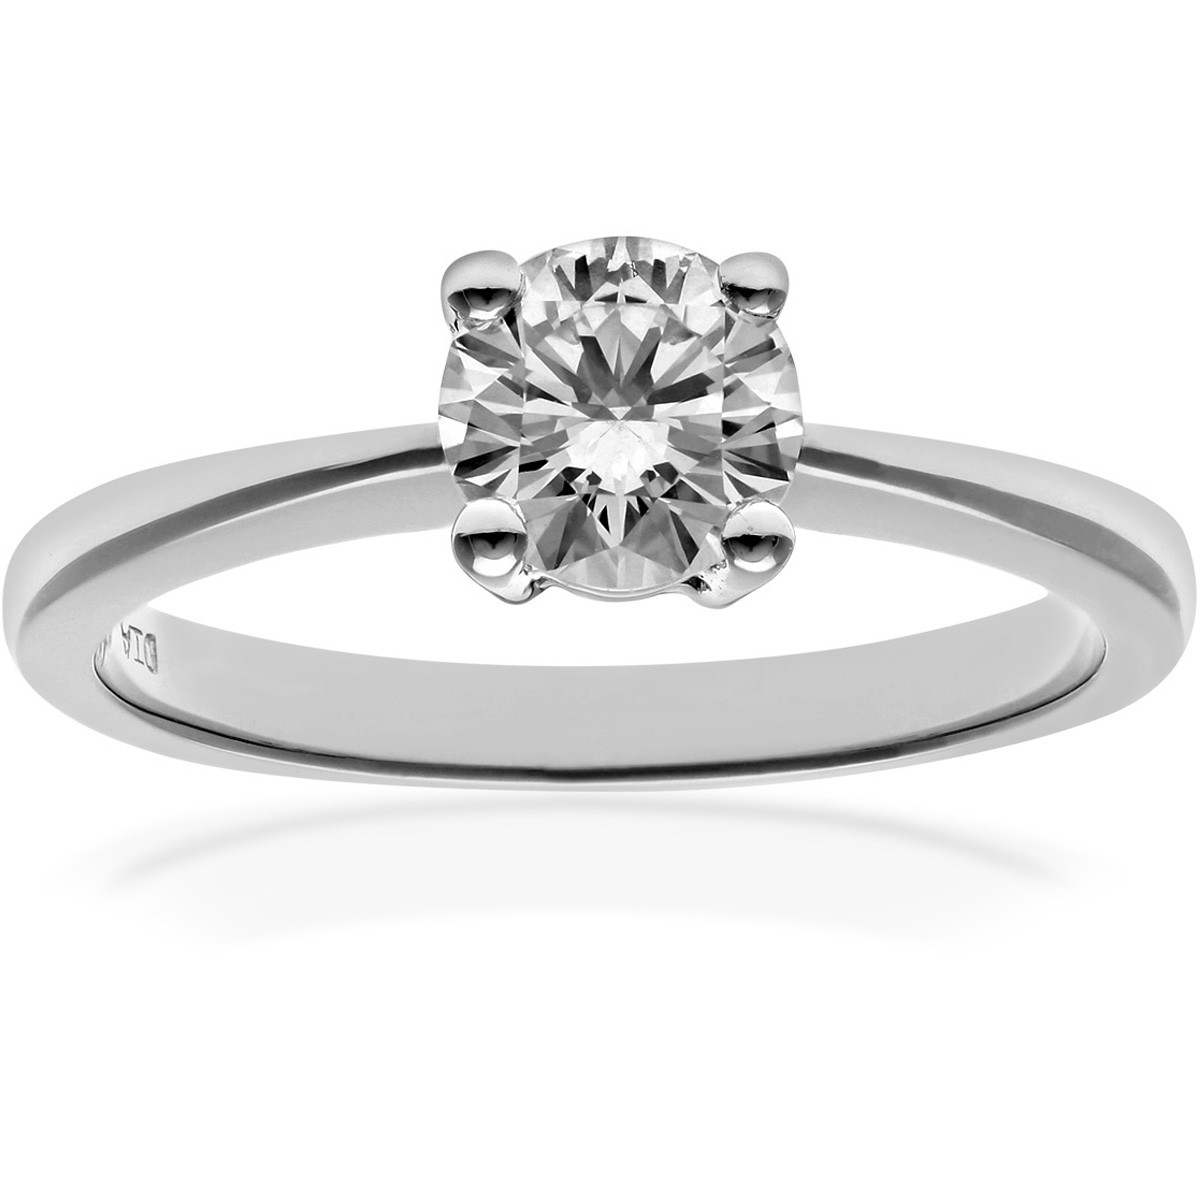 18CT WHITE GOLD 0.75CT DIAMOND SOLITAIRE RING